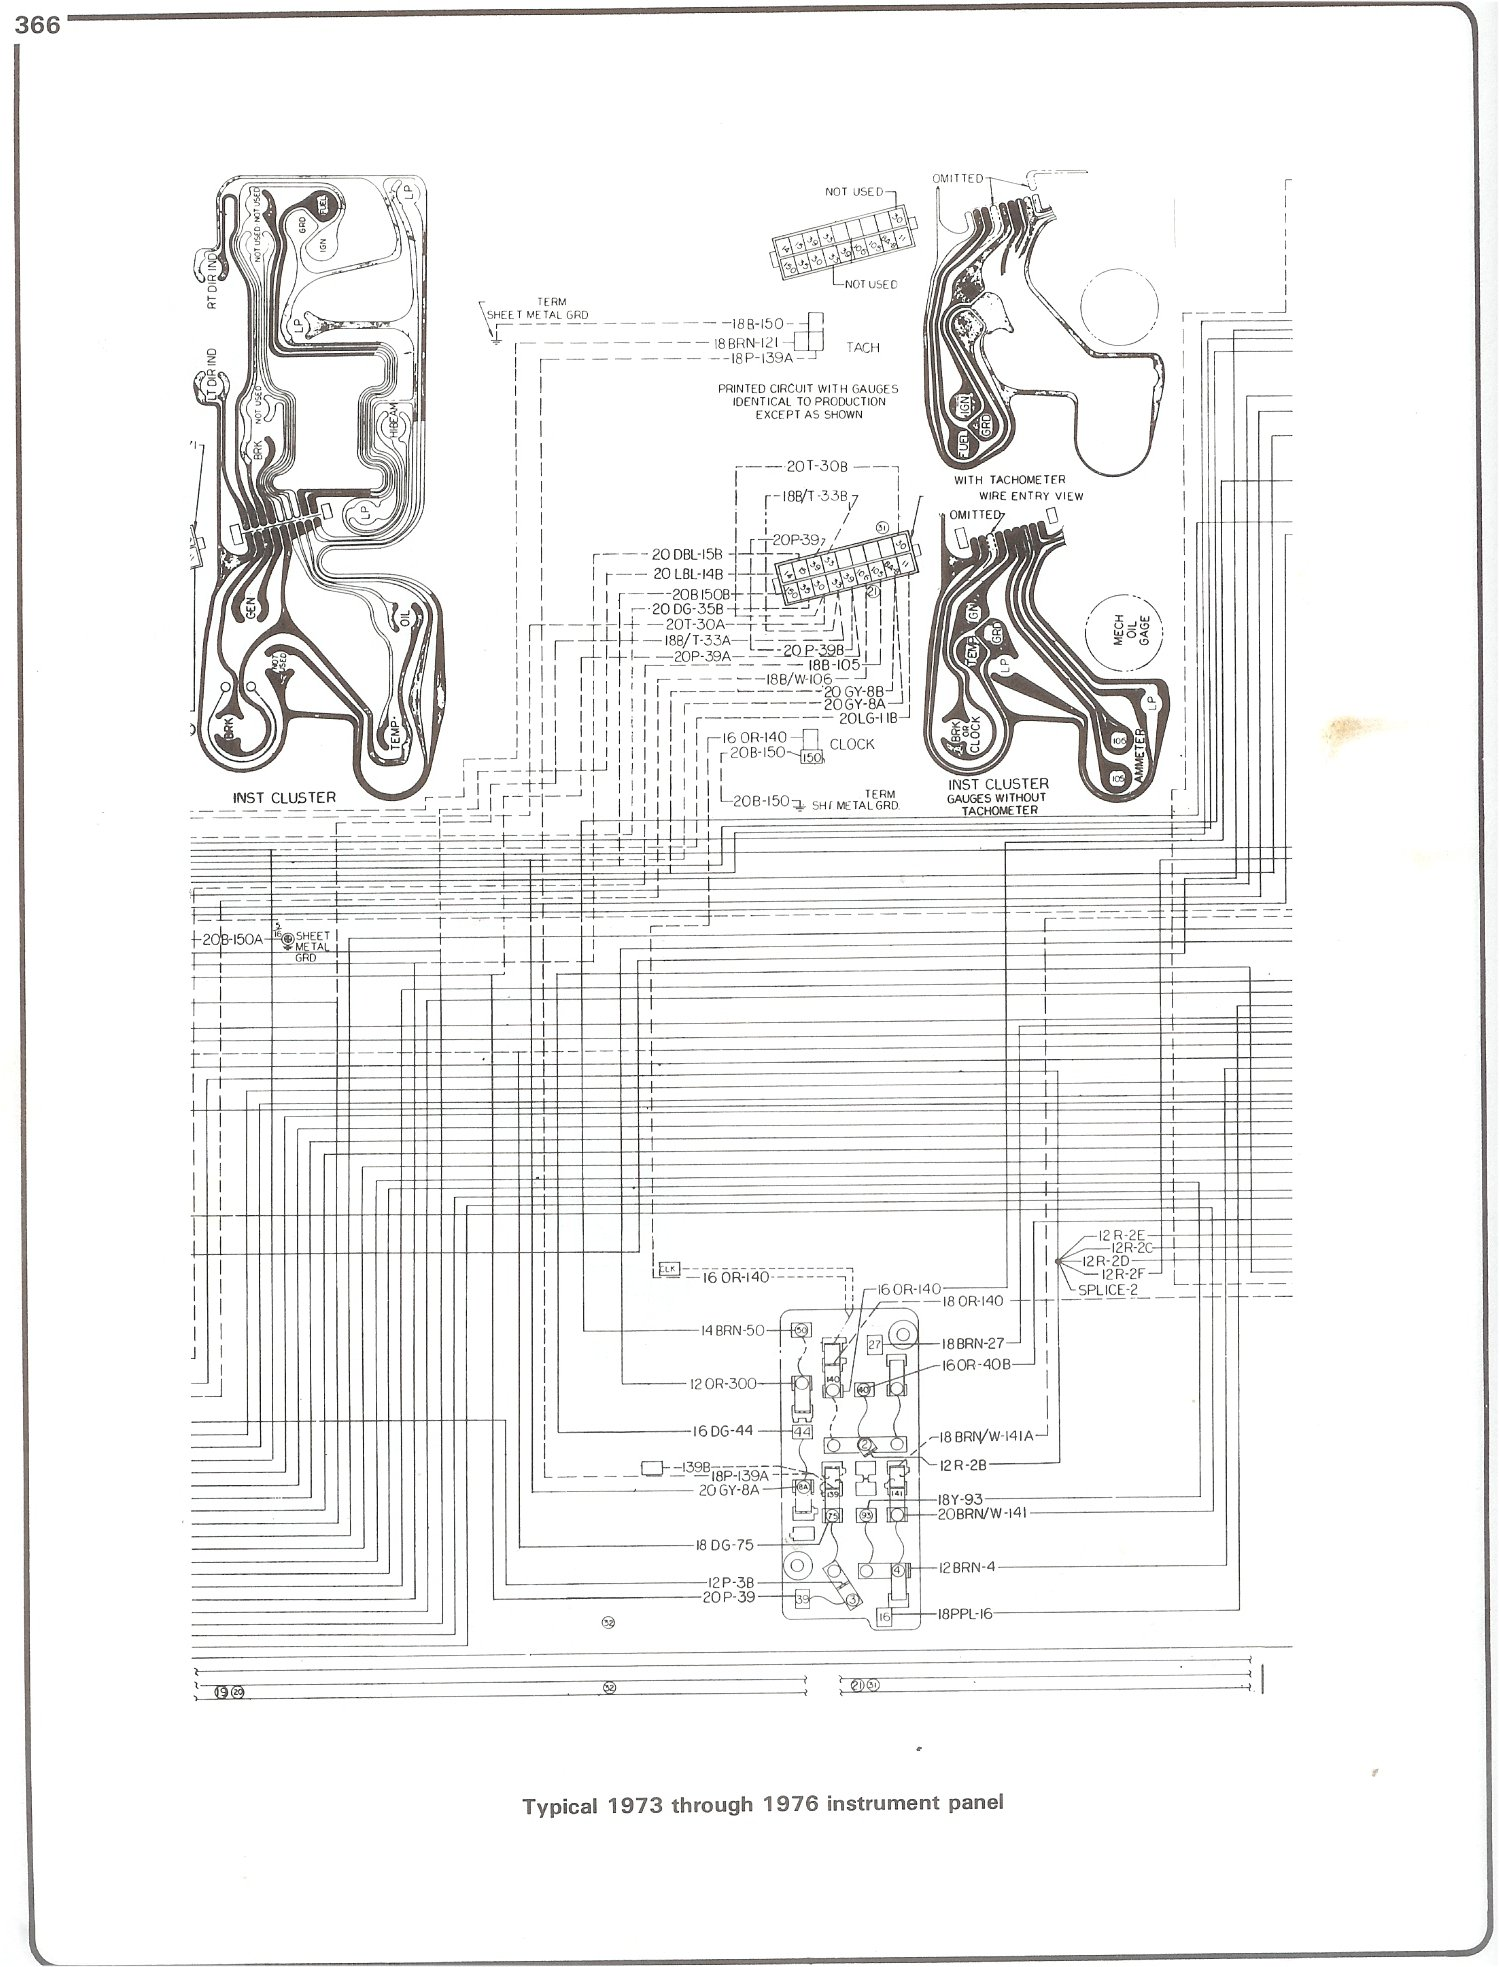 1978 Chevy Van Wiring Diagram - 9.vzumkett.blombo.info • on 2000 chevrolet venture wiring diagram, 2000 chevrolet blazer wiring diagram, 2000 chevrolet cavalier wiring diagram,